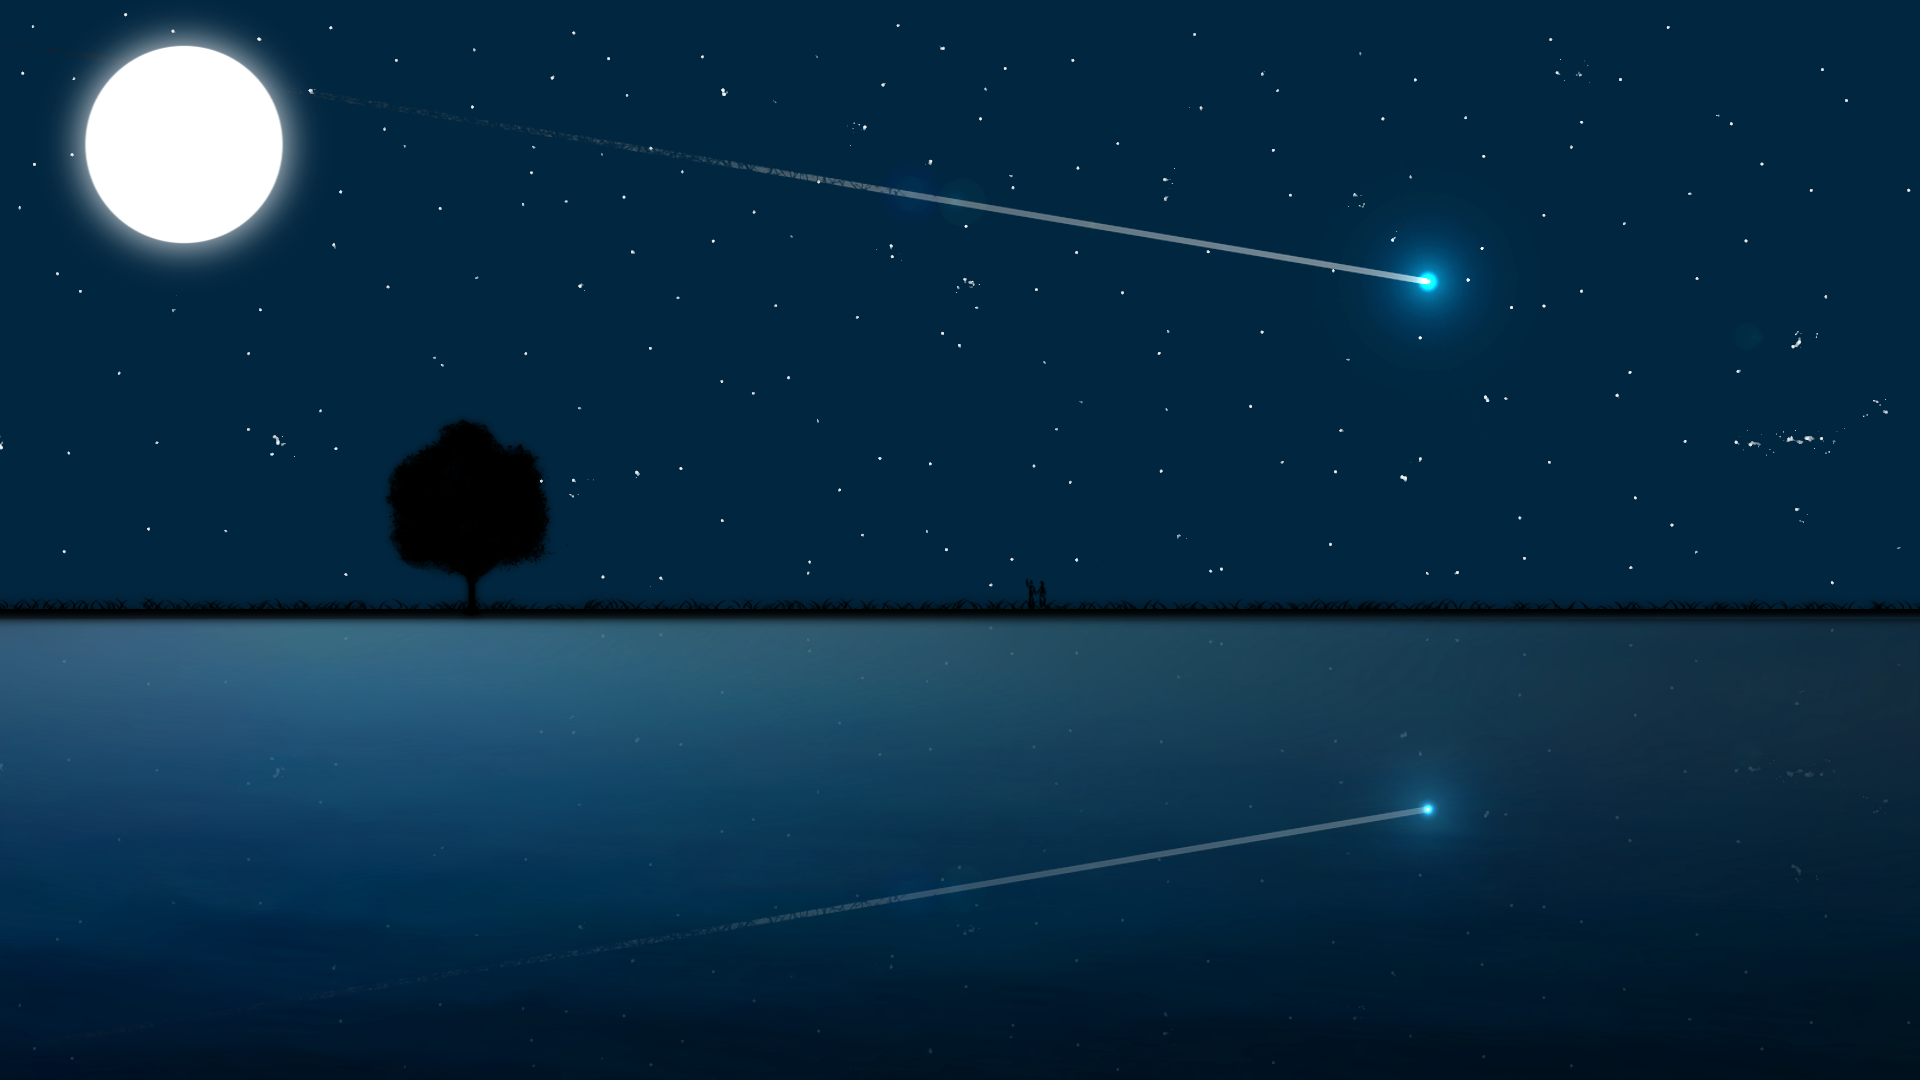 Starry Sky Simplistic Computer Wallpapers Desktop 1920x1080